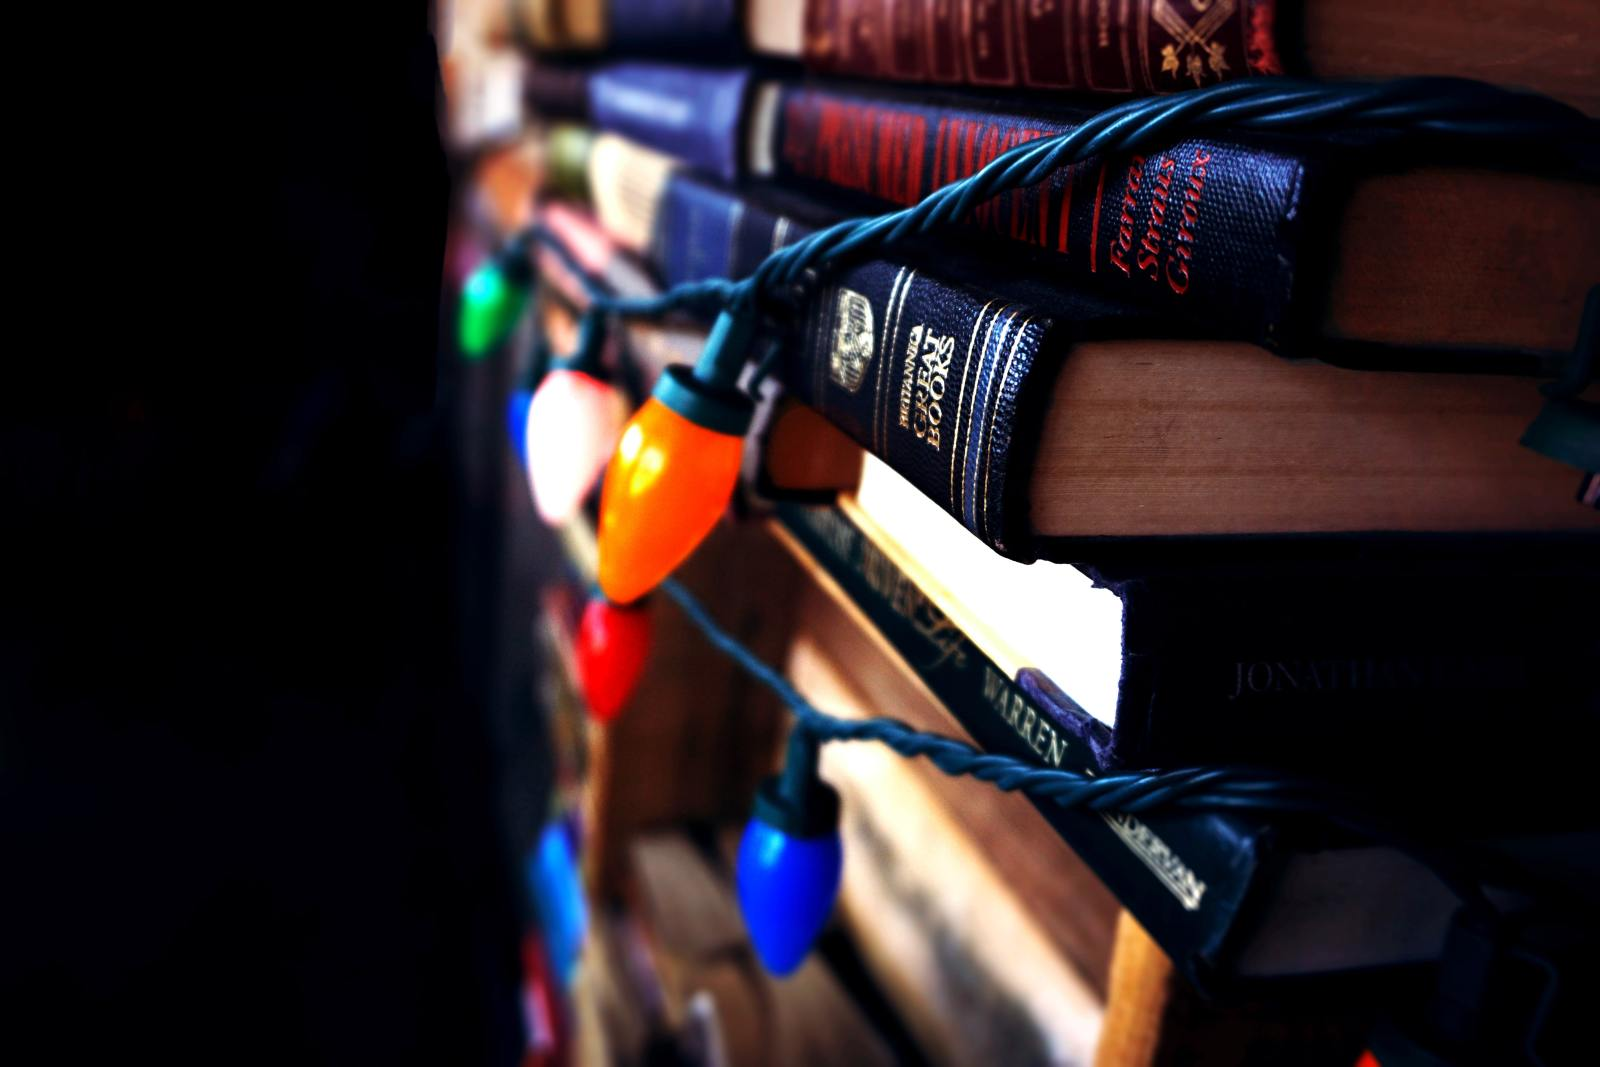 Books with Lights